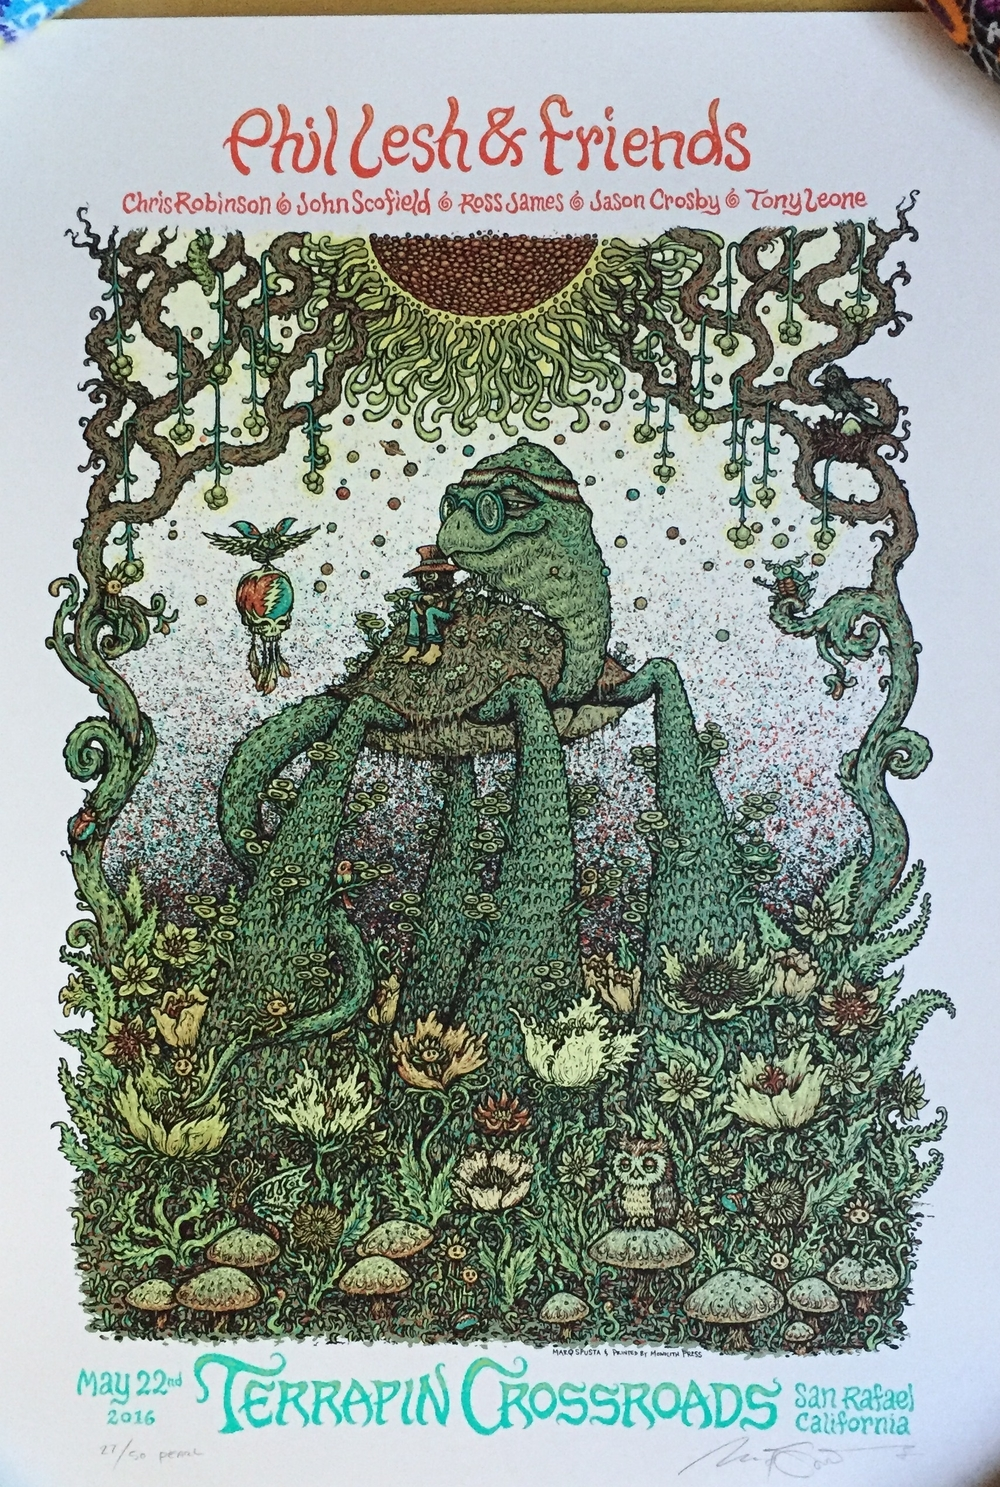 "Phil Lesh & Friends 15"" x 22"" on pearl"